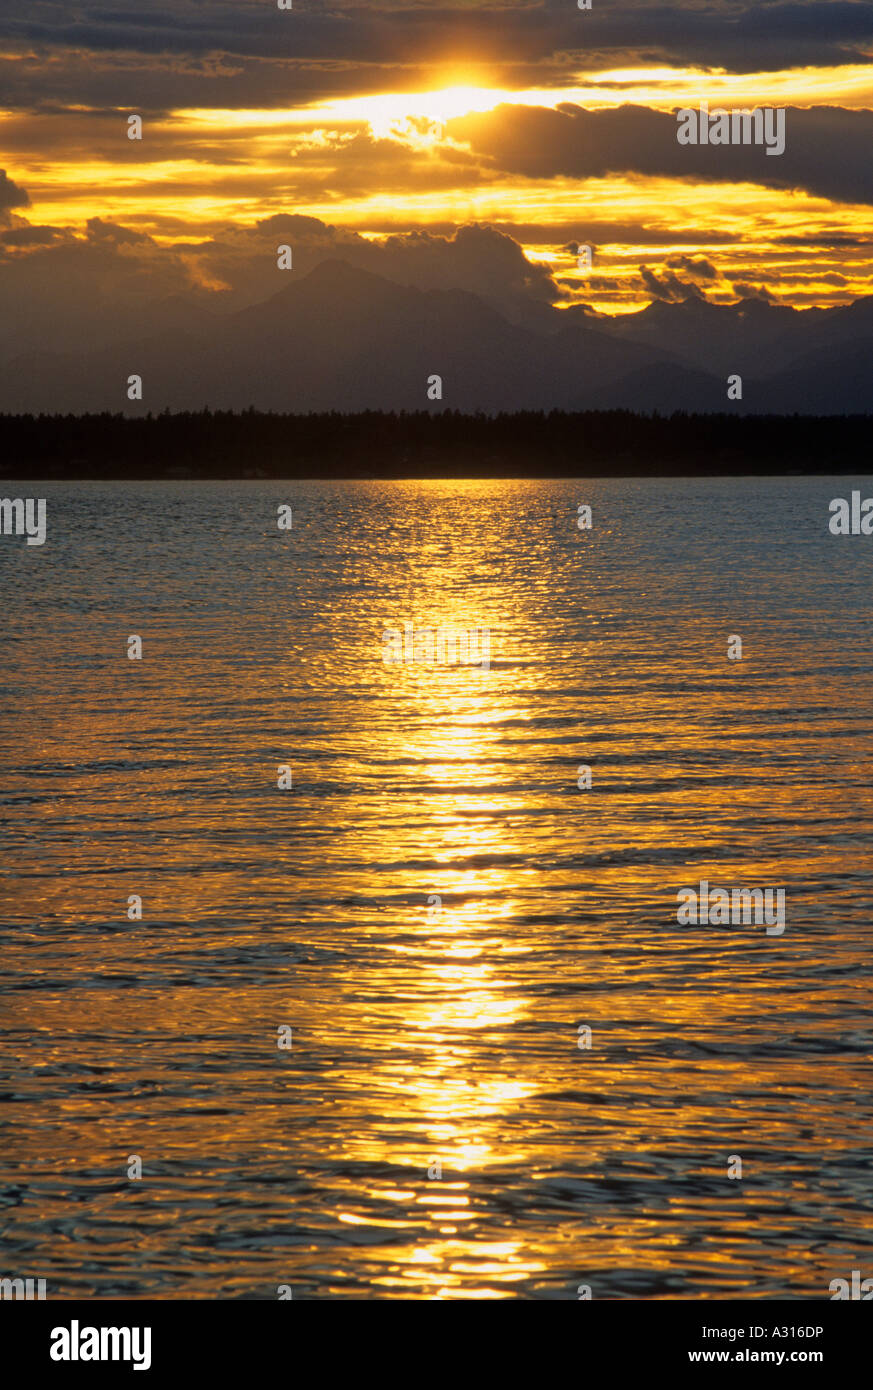 Sunset over Puget Sound and the Olympic Mountain Range at Golden ...